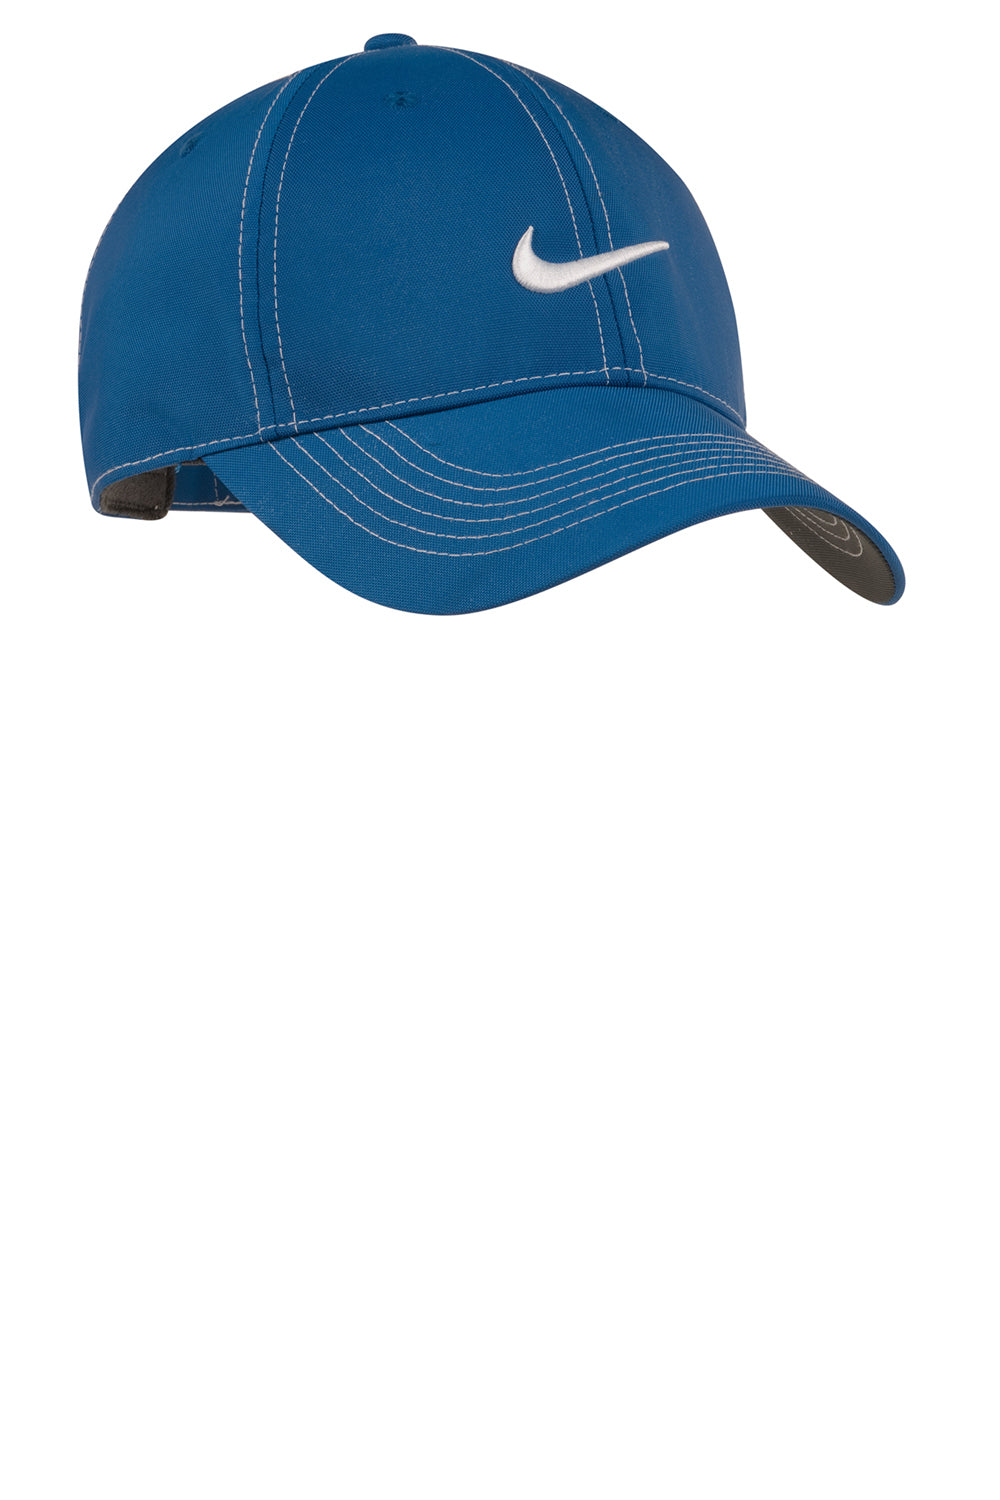 Nike 333114 Mens Adjustable Hat Royal Blue Front